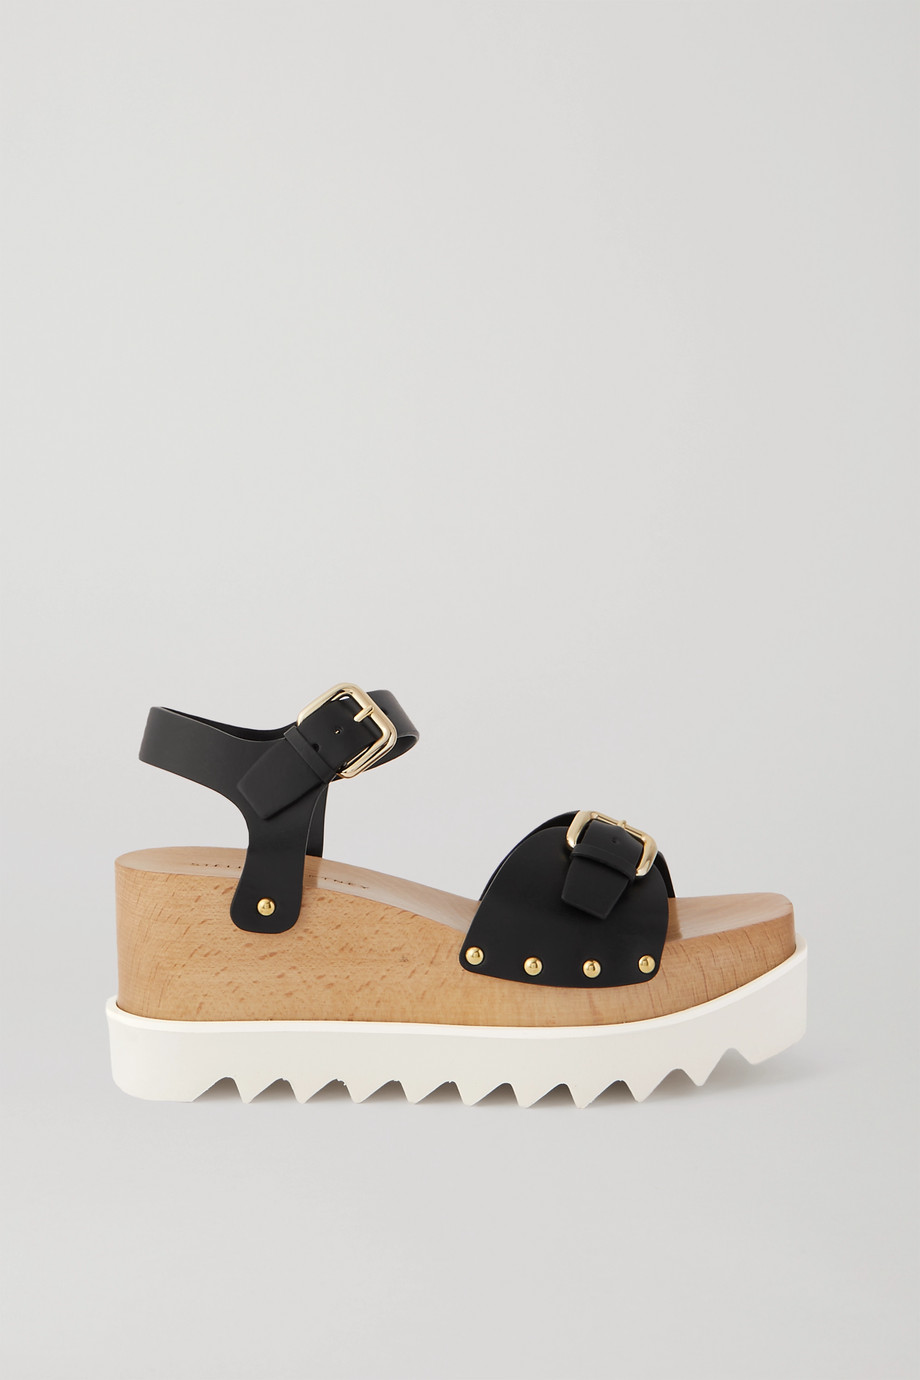 Stella McCartney Elyse studded vegetarian leather platform sandals